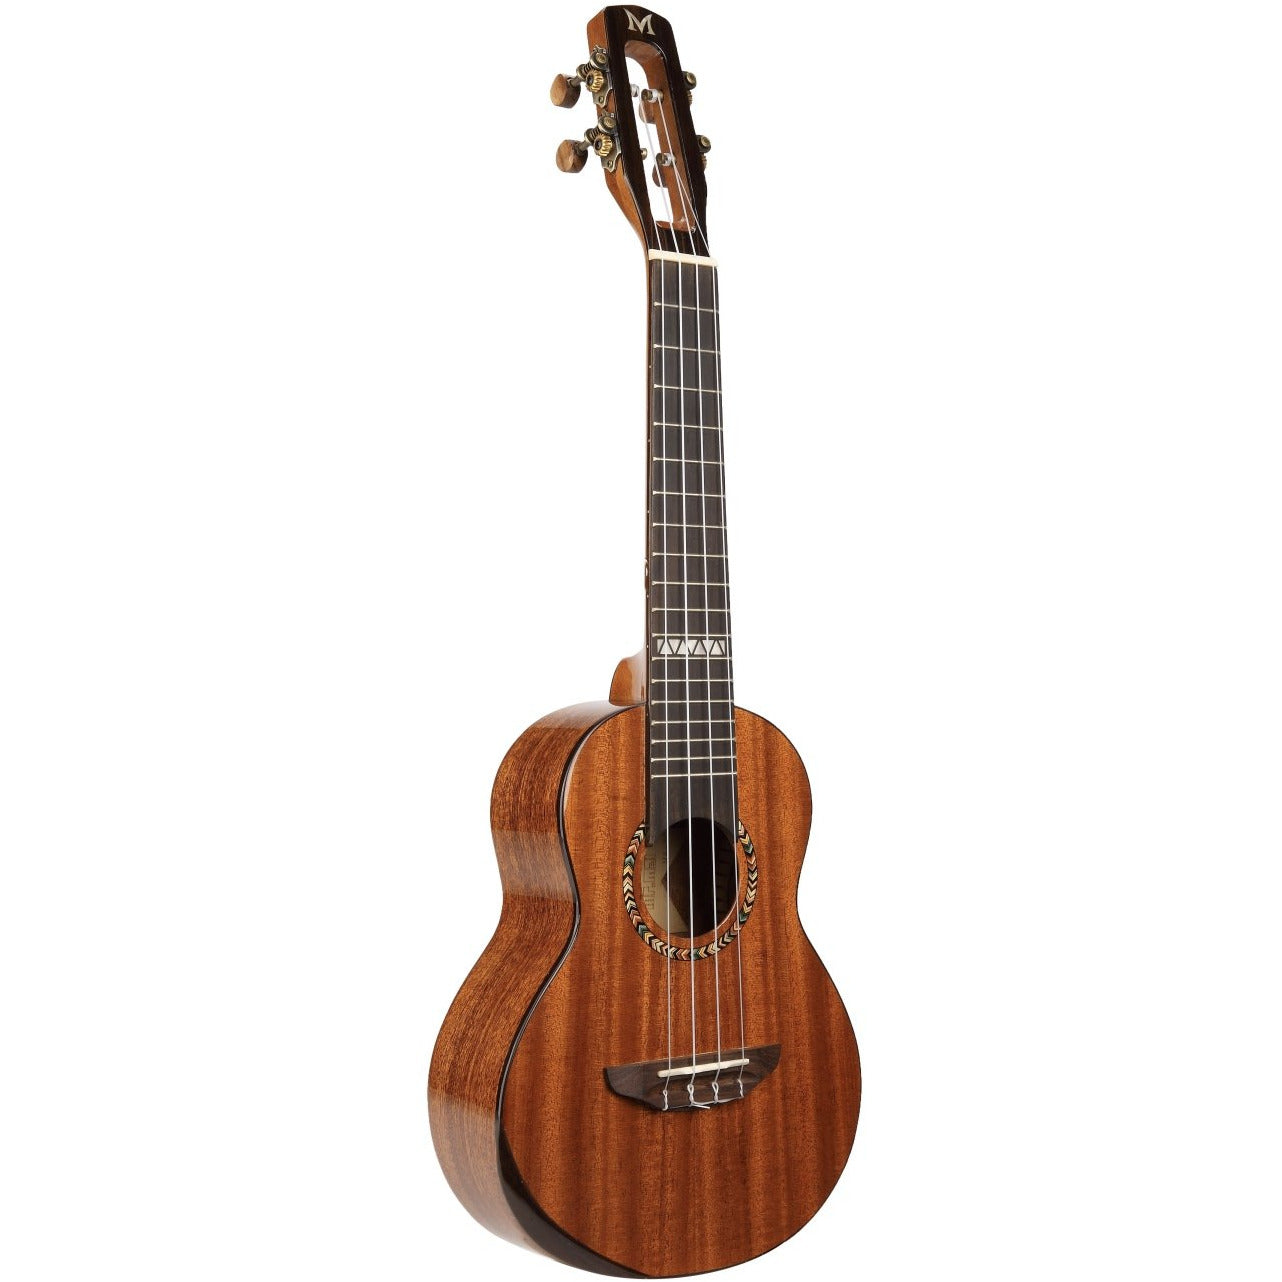 Mr Mai M-A80 All Solid Mahogany Concert Ukulele - Freebirdmusic